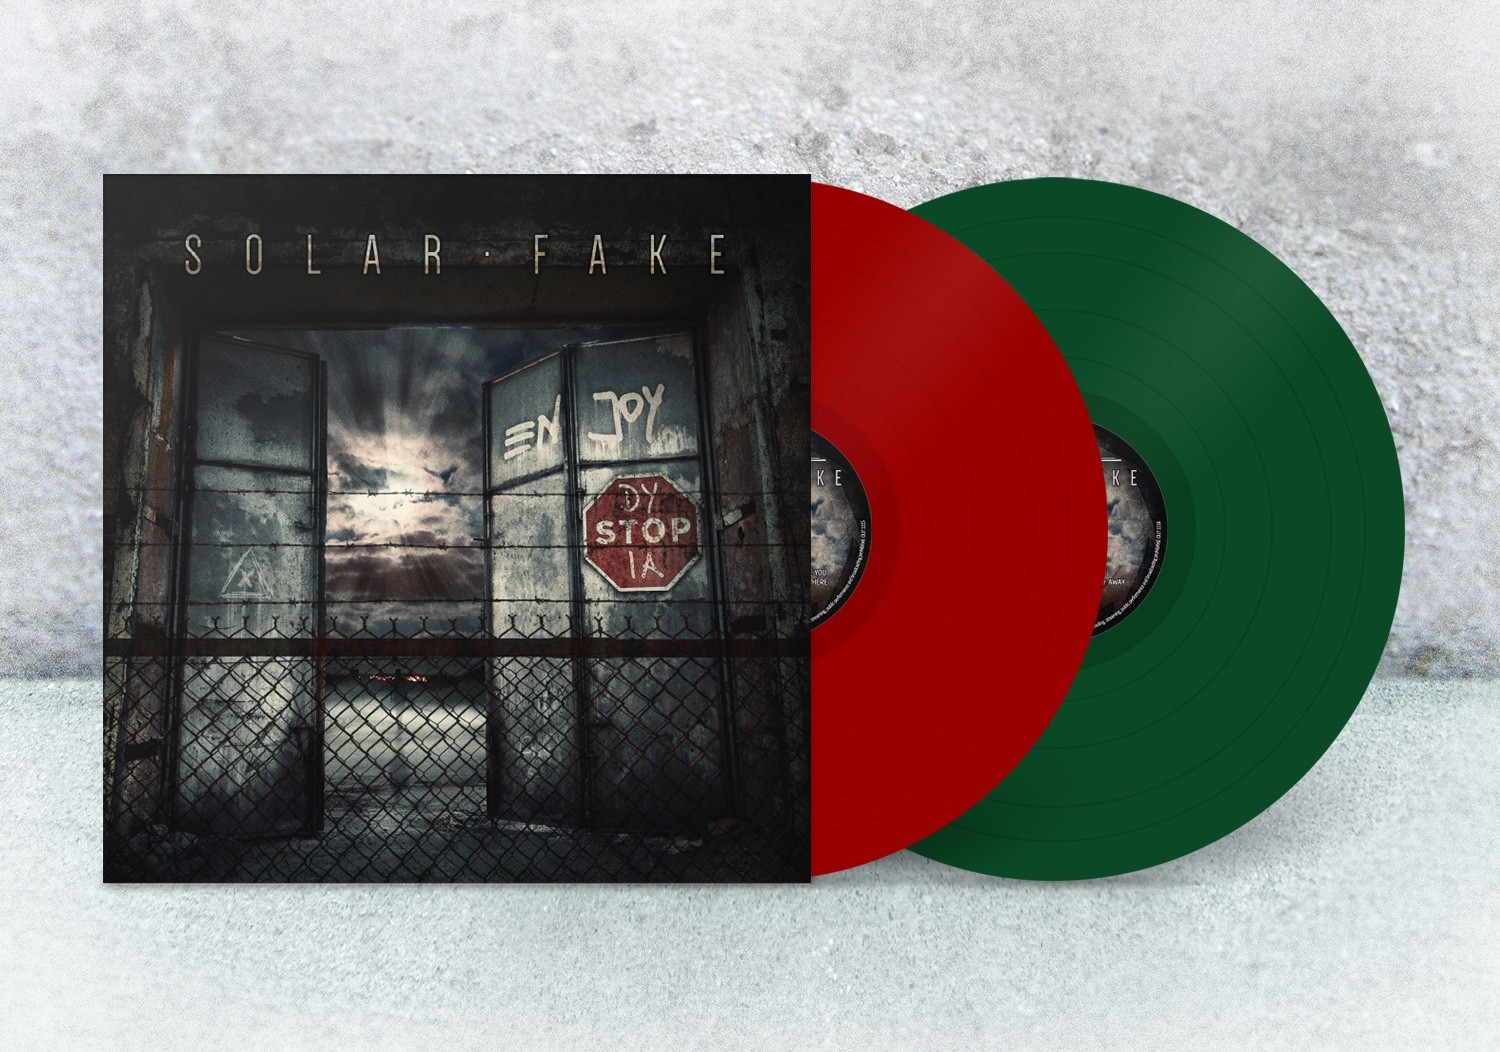 Solar Fake - Enjoy Dystopia (Limited Colored Vinyl) - 2LP